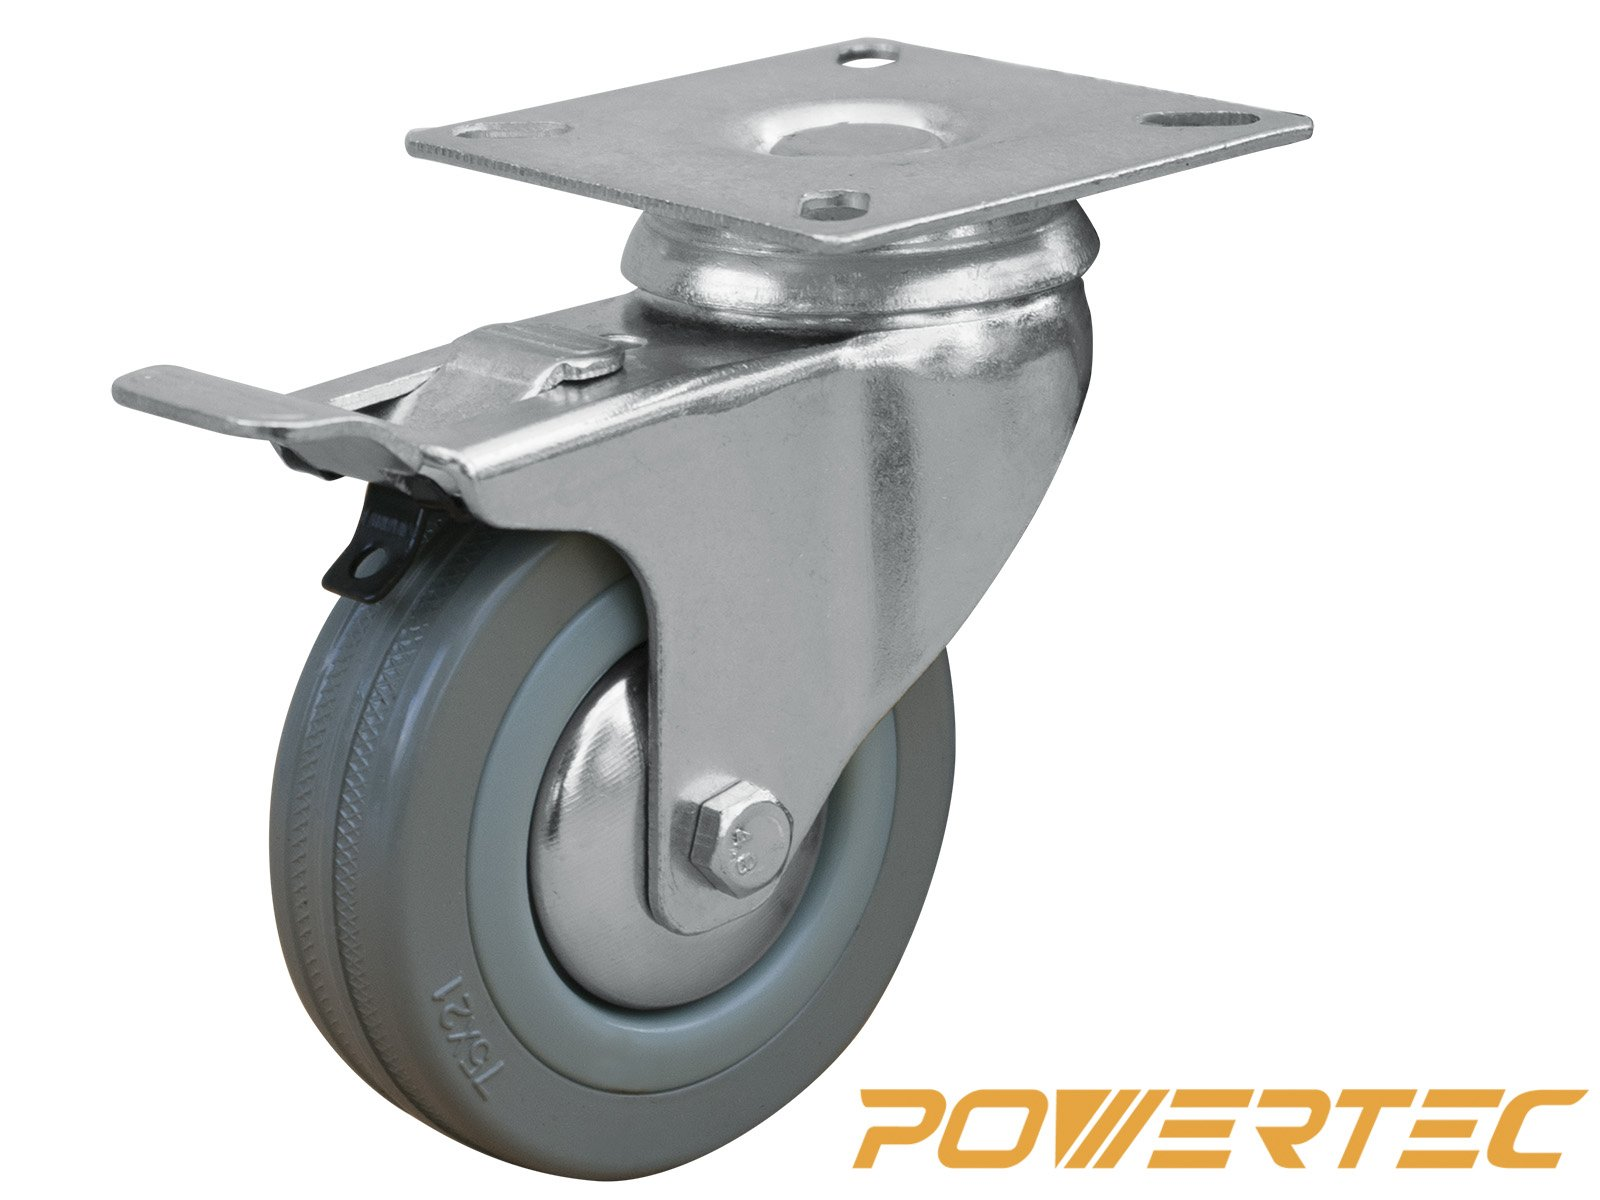 POWERTEC 17023 3-Inch Swivel Double Lock Rubber Plate Caster, Grey